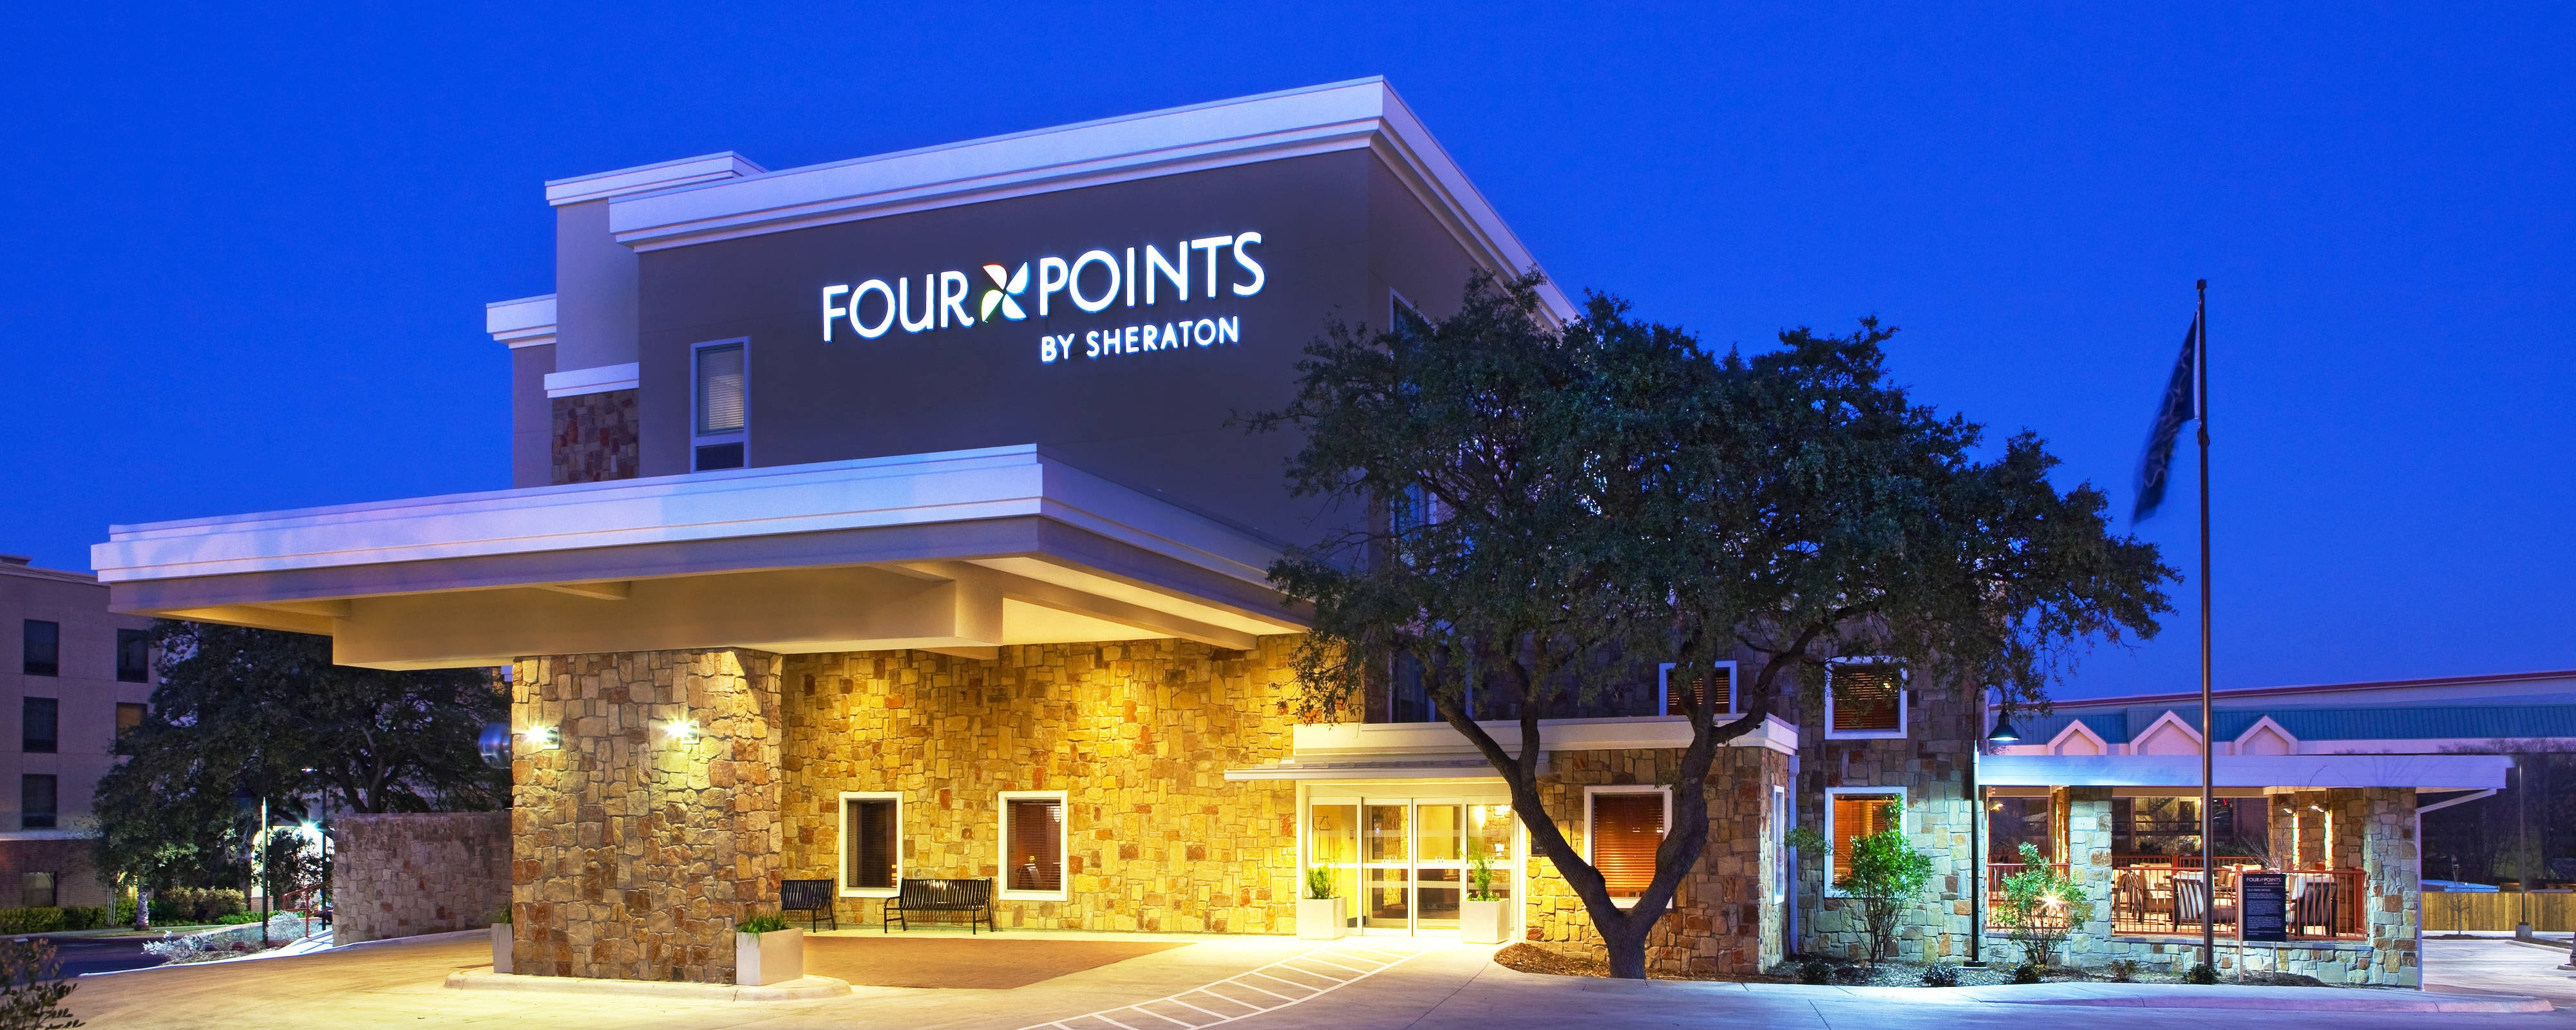 Hotels In San Antonio Texas Four Points By Sheraton Airport